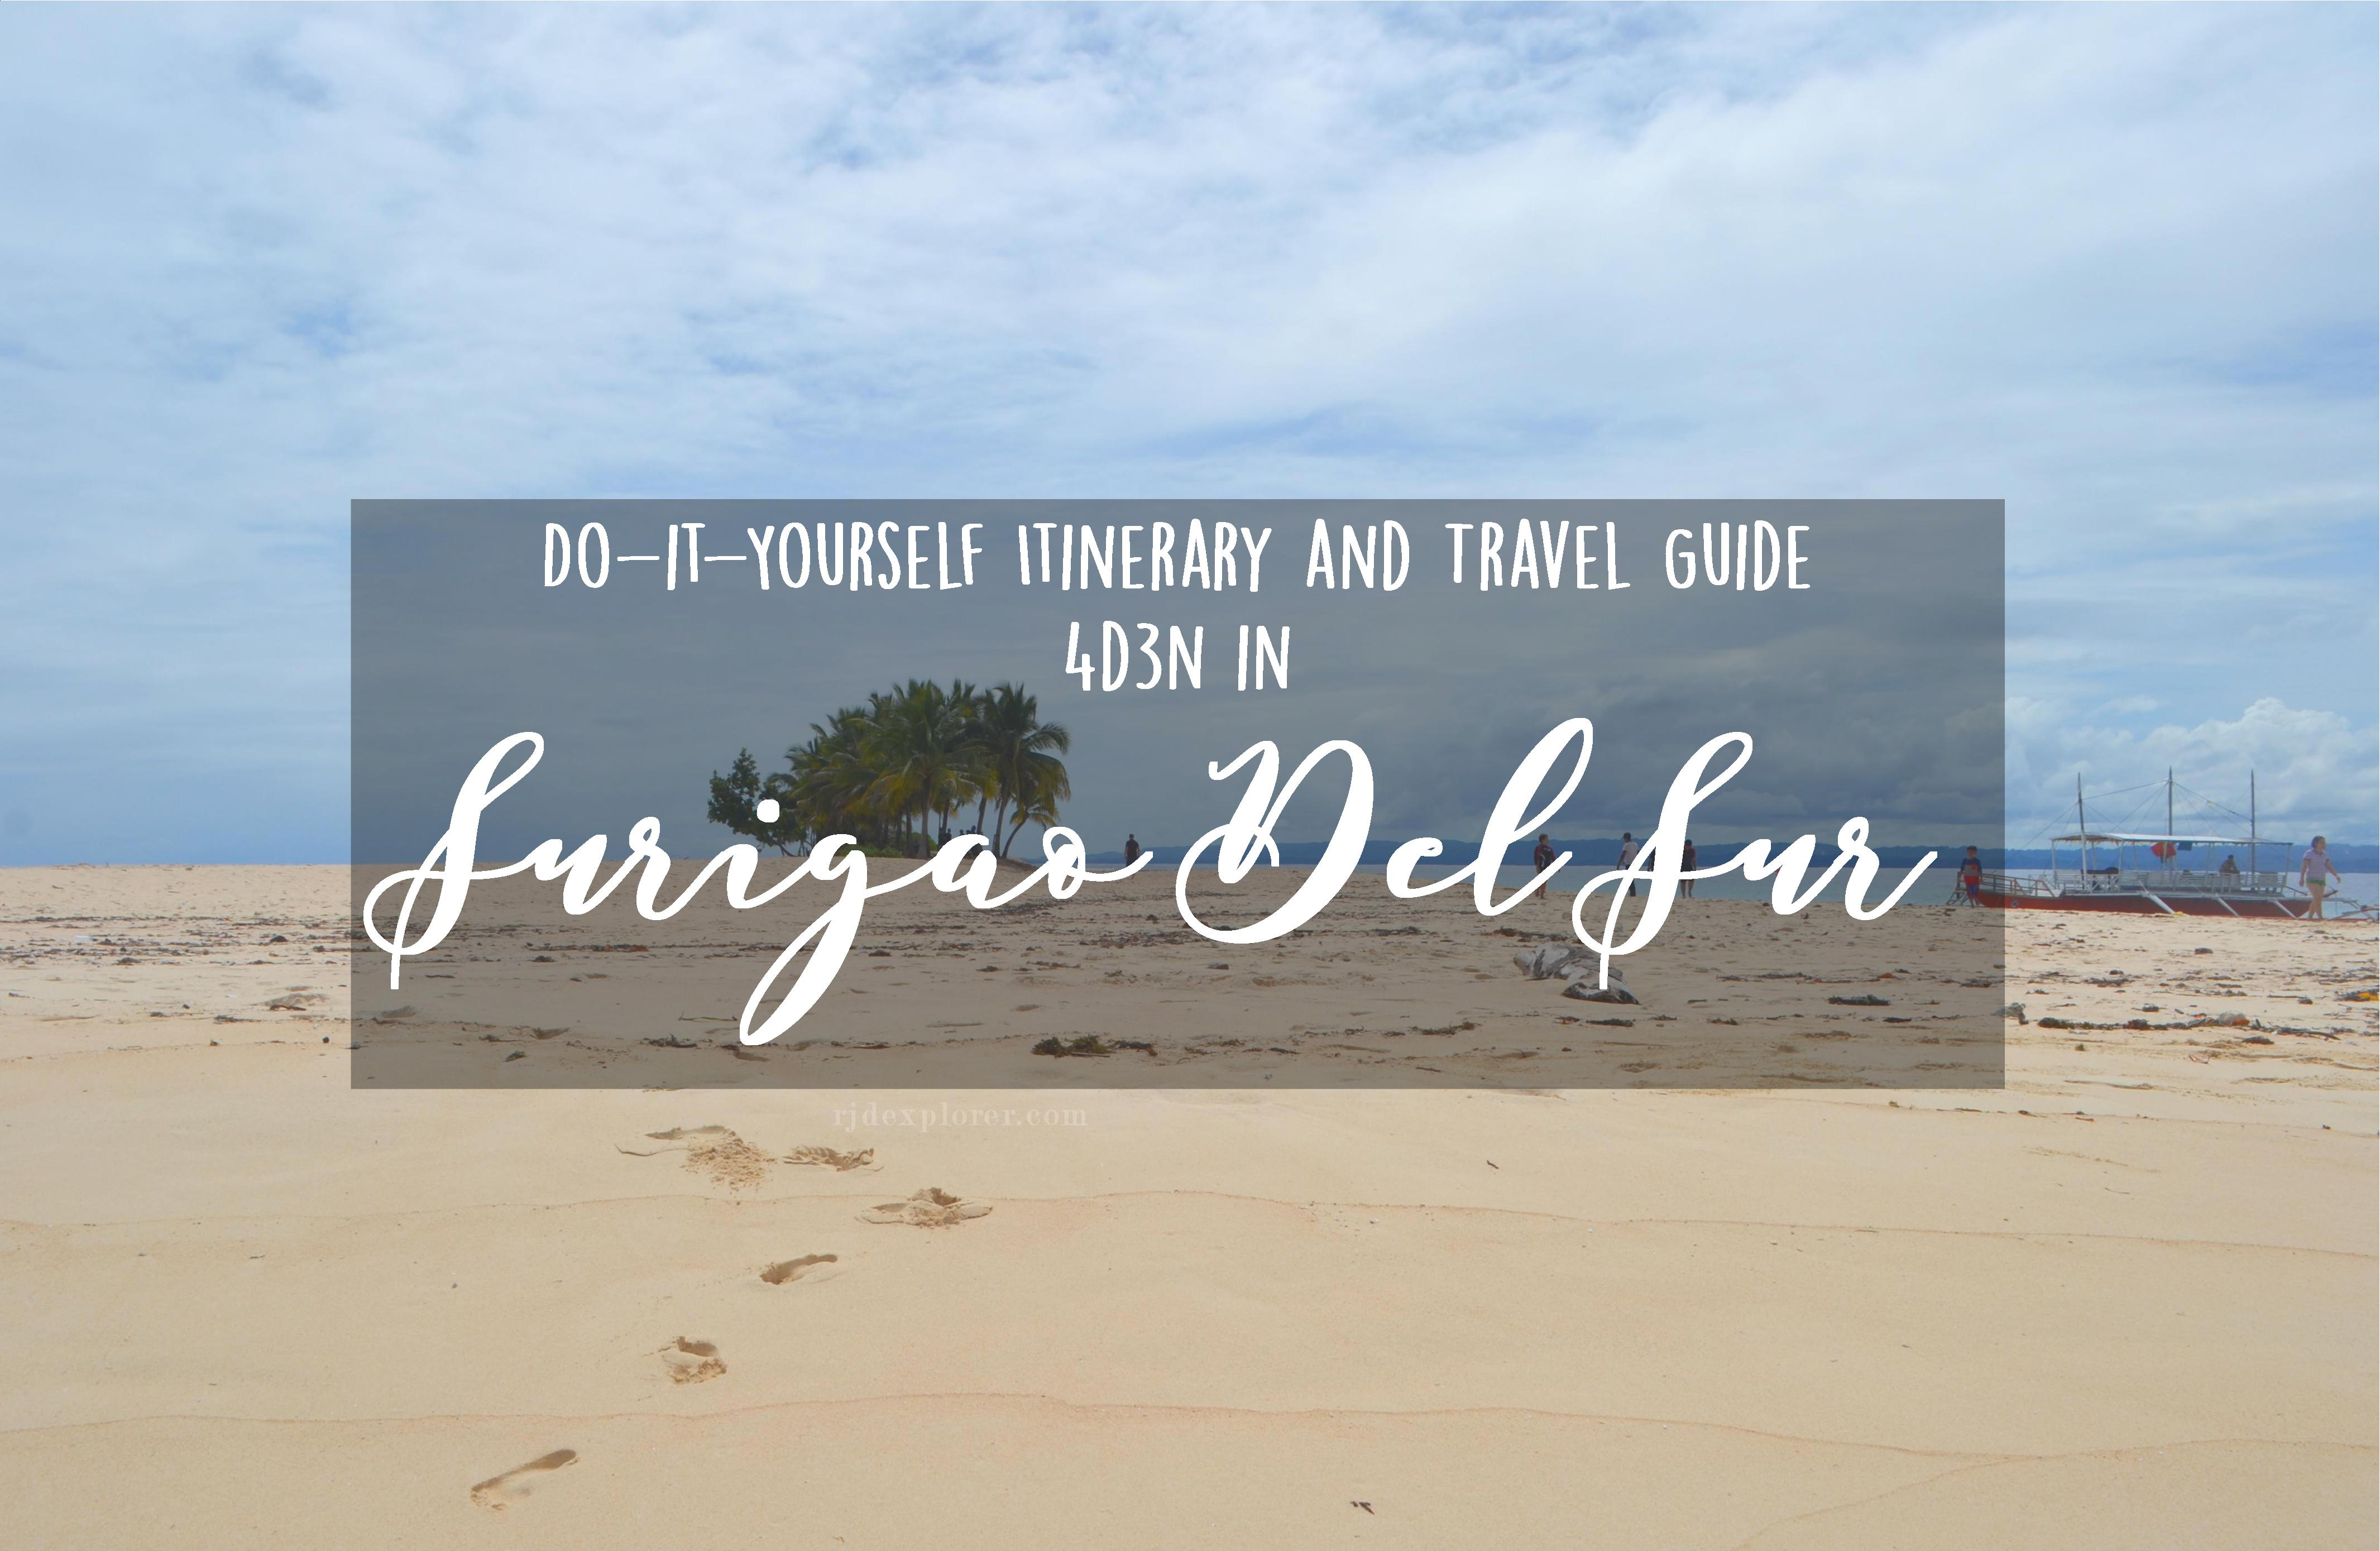 Diy Itinerary And Travel Guide 4d3n Surigao Del Sur